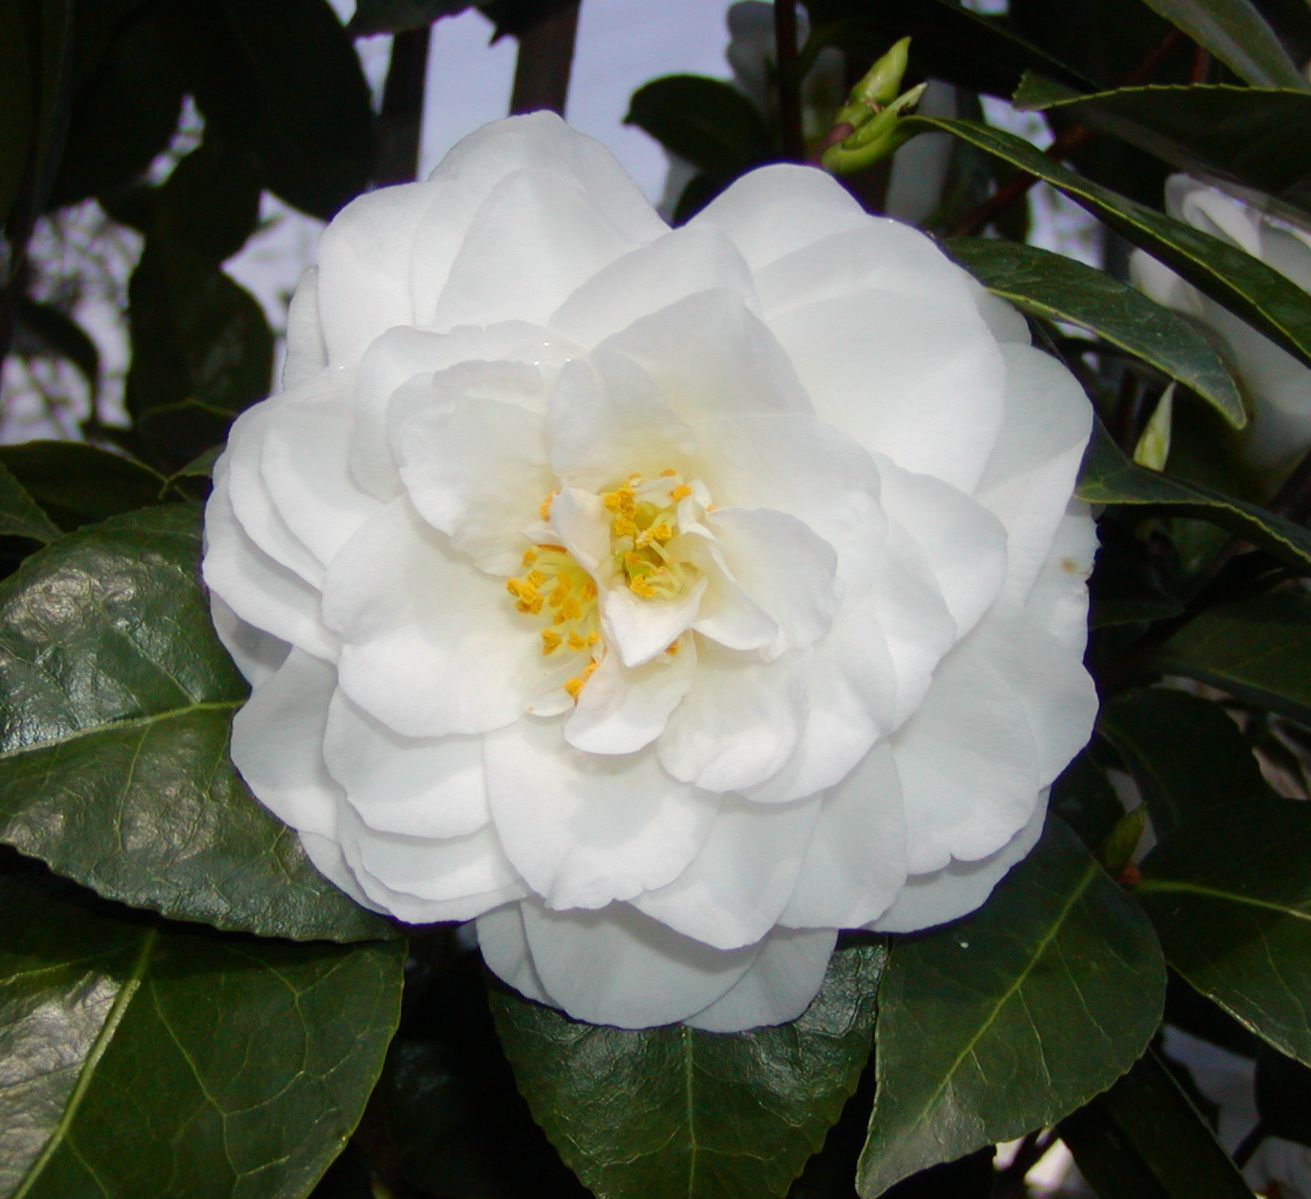 Pin Camelia Of Camellia Japonica on Pinterest